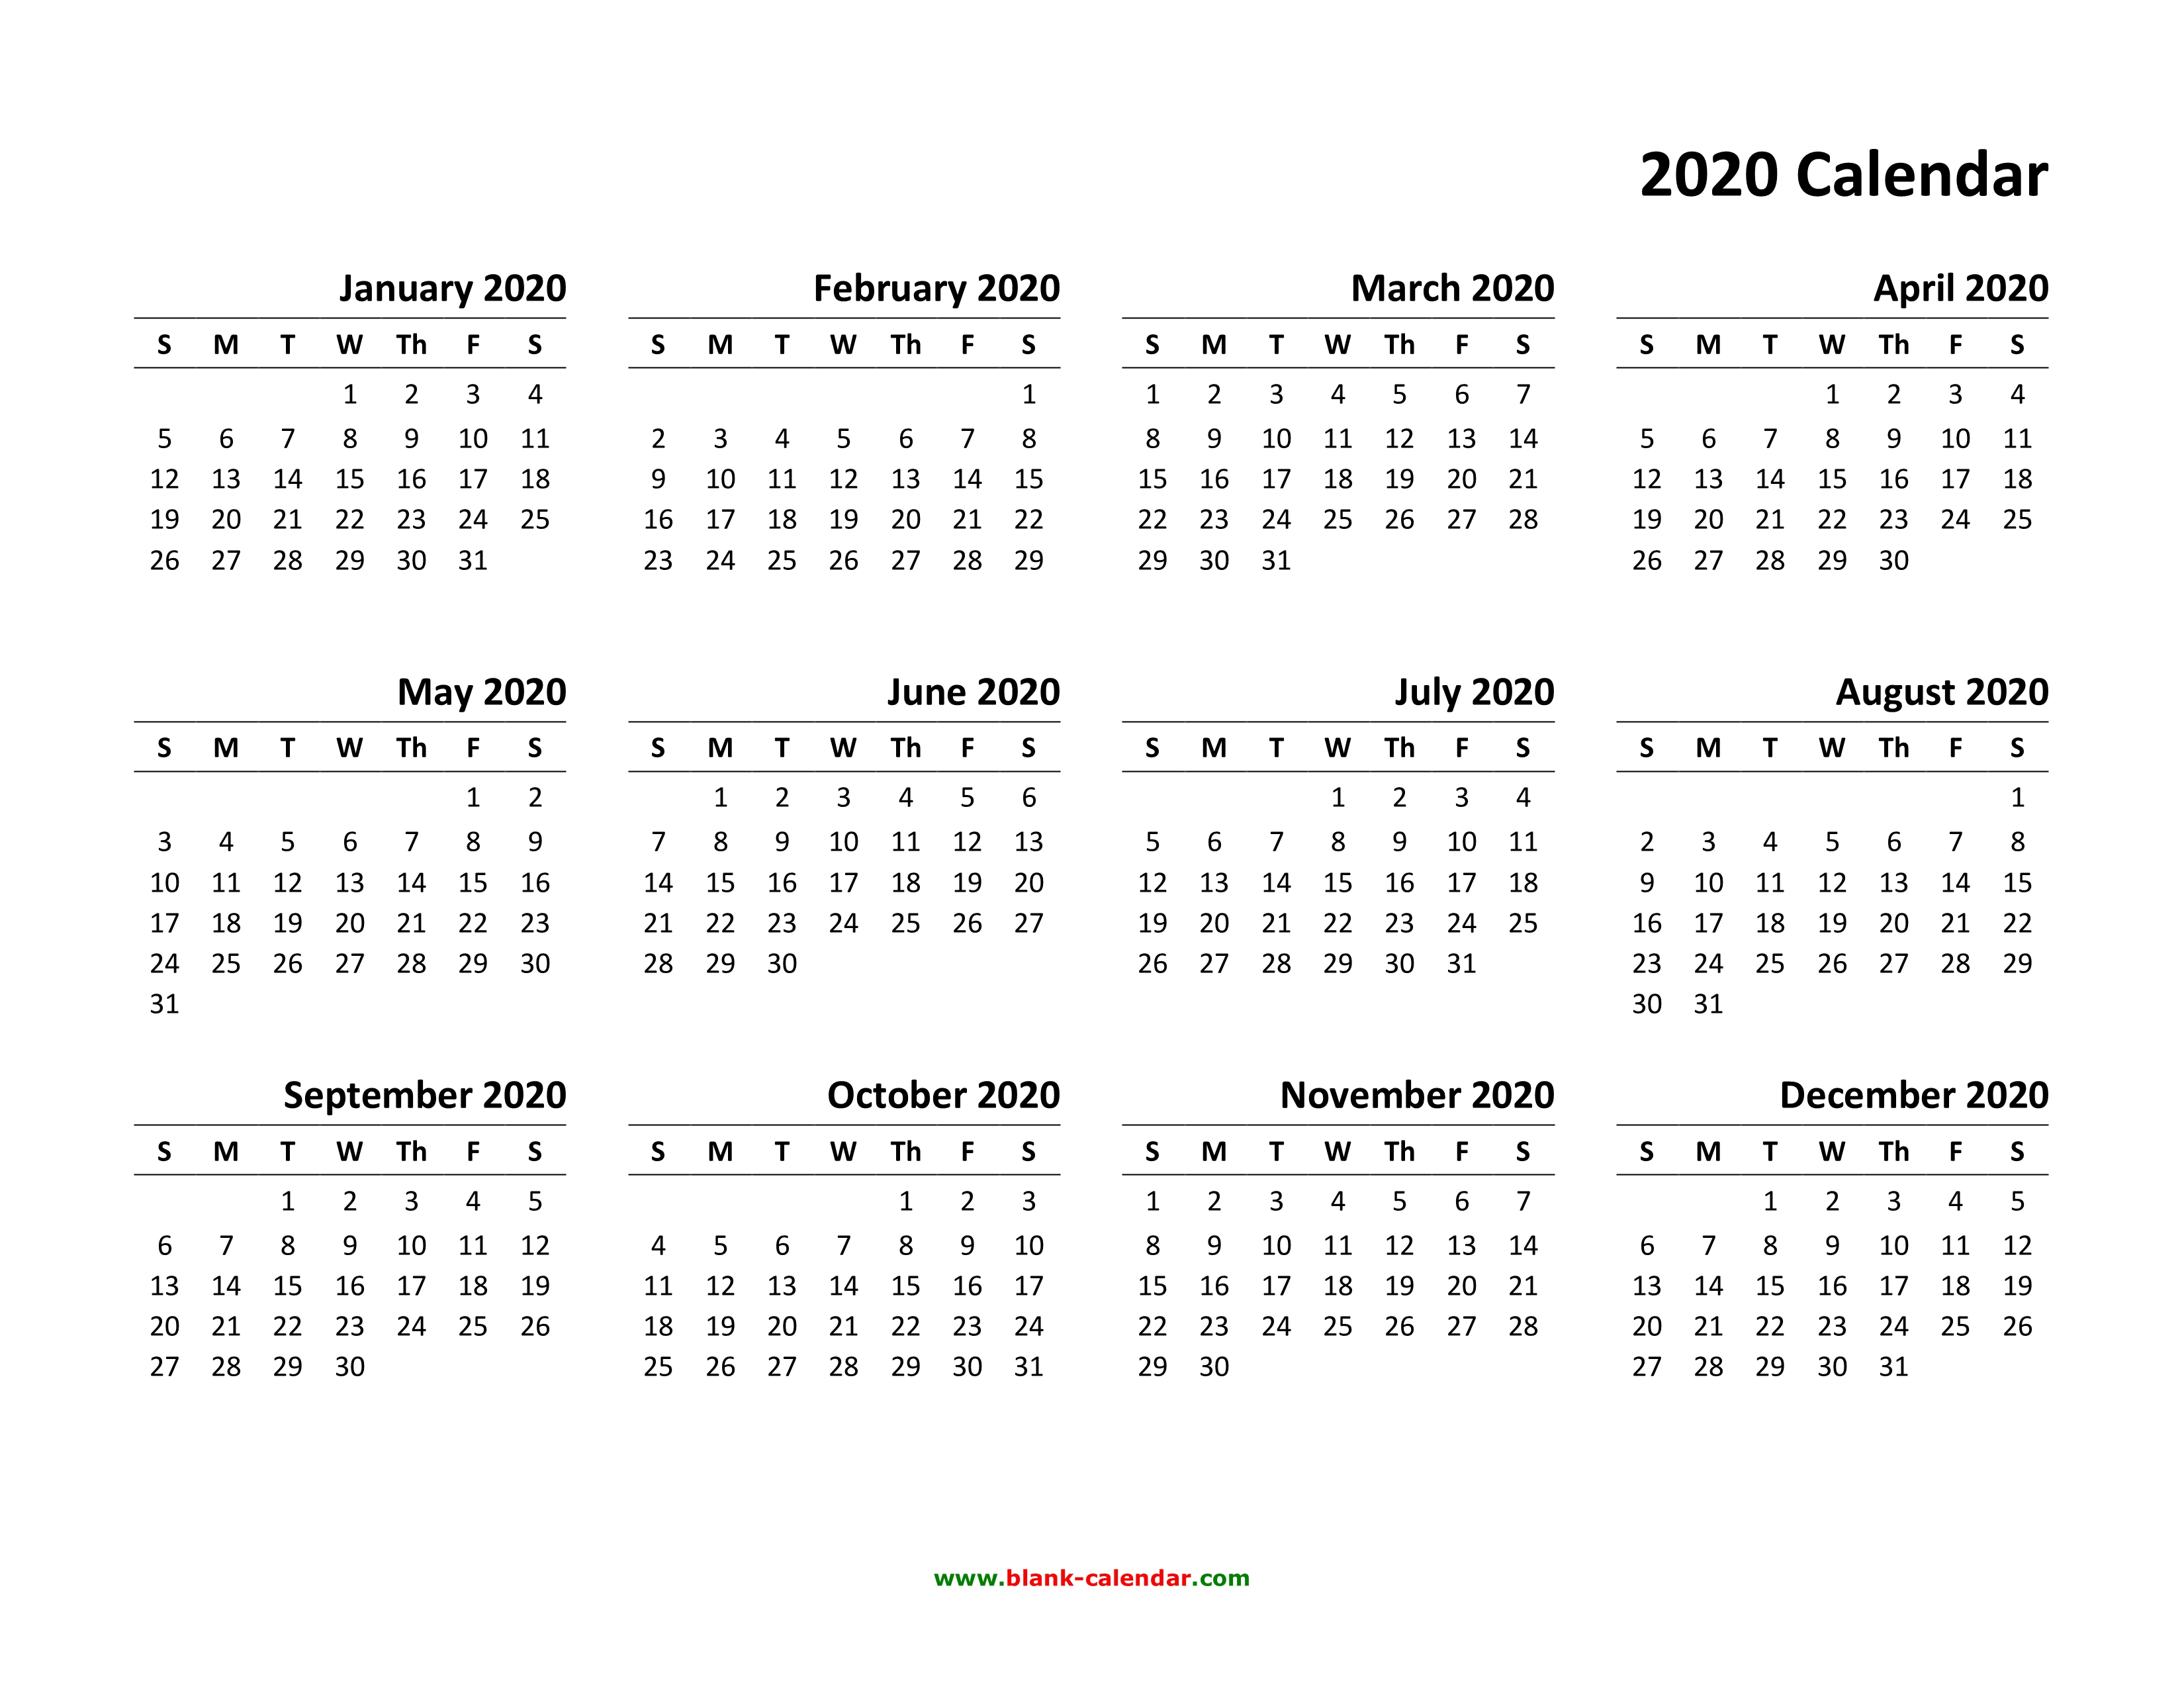 Yearly Calendar 2020 | Free Download And Print with regard to 2020 Calendar Printable Free Pdf